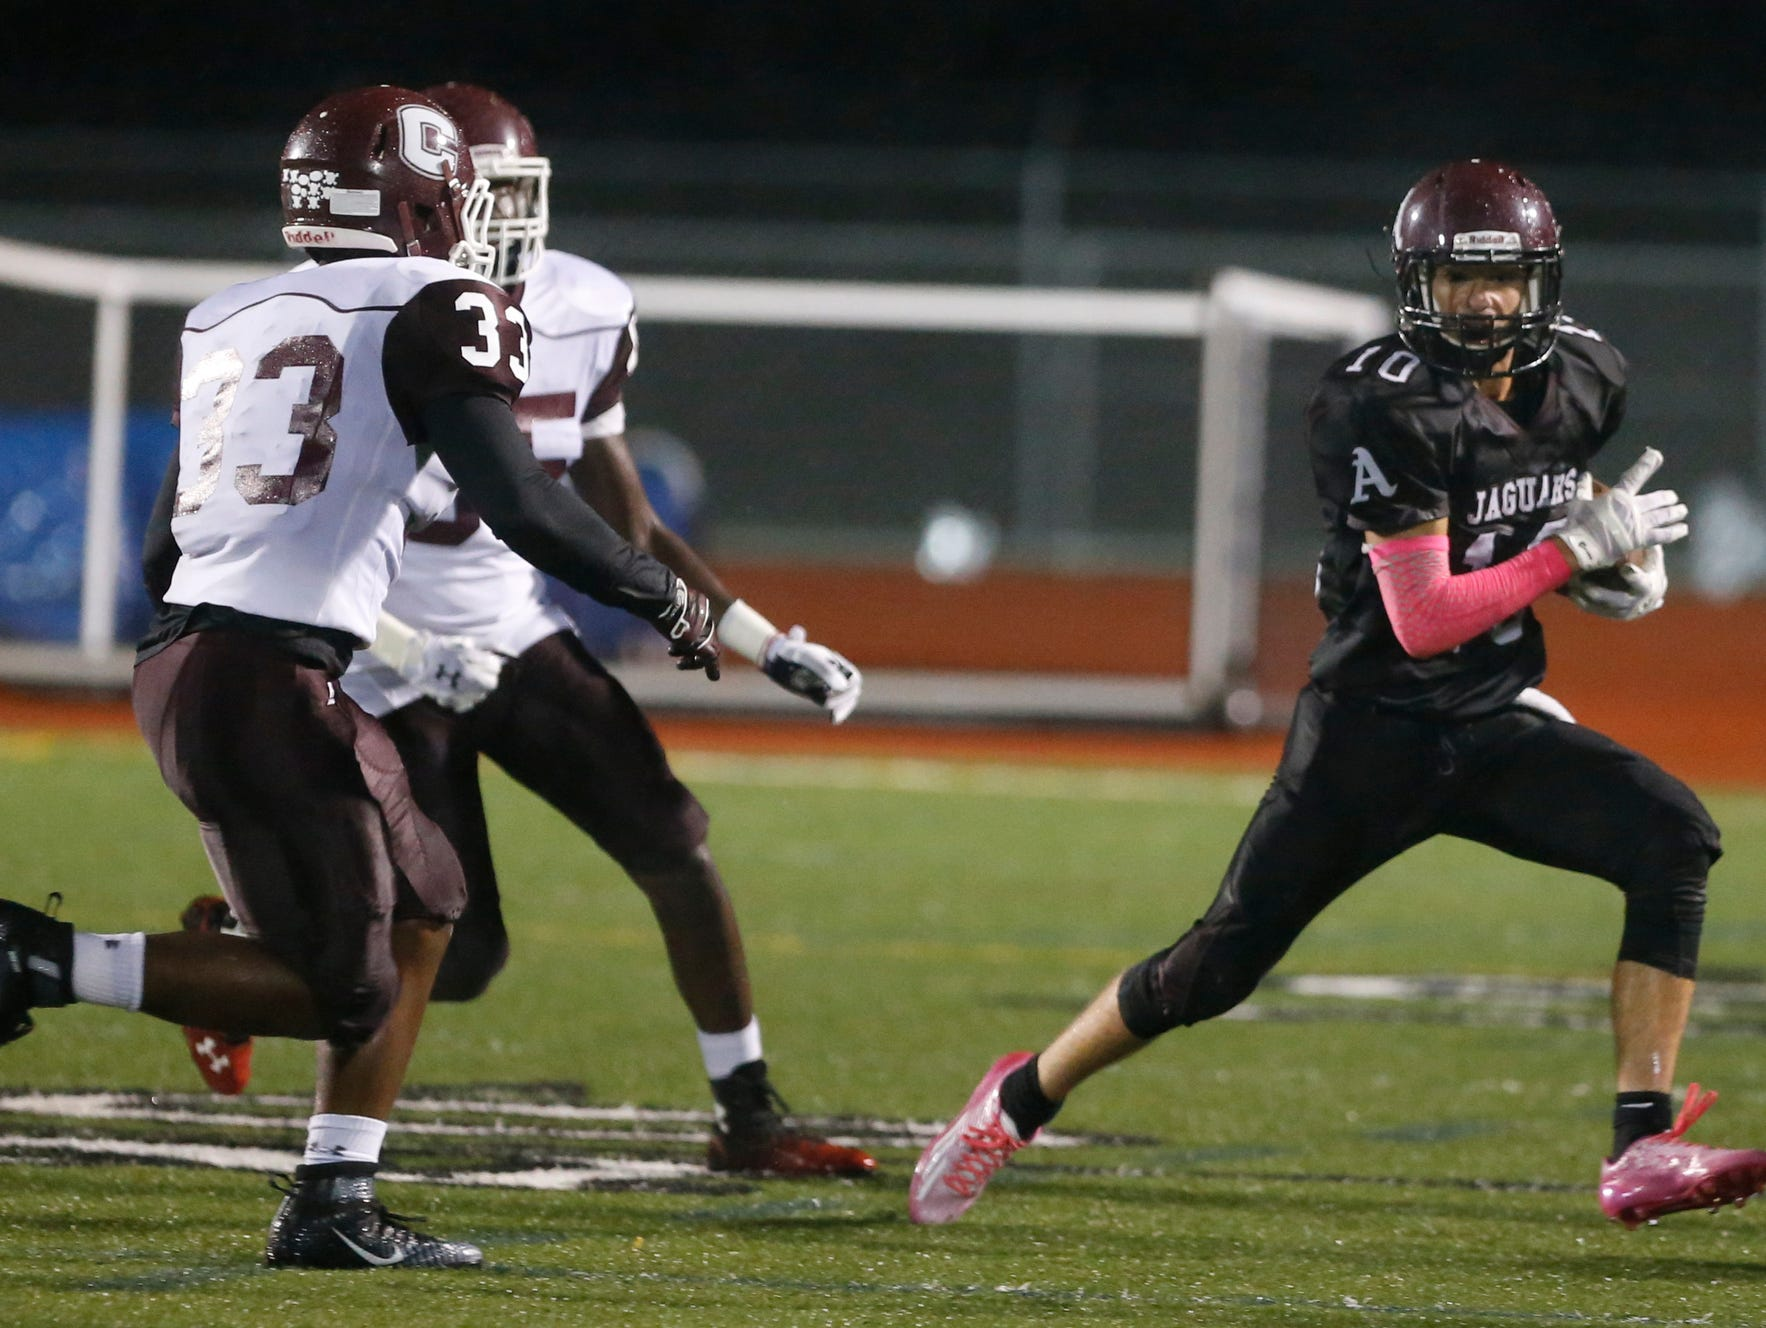 Appoquinimink's Kevin Banning (right), shown here against Concord's Byron Simpson (33), returned a kickoff for a TD in the Jaguars' wild win at A.I. du Pont.